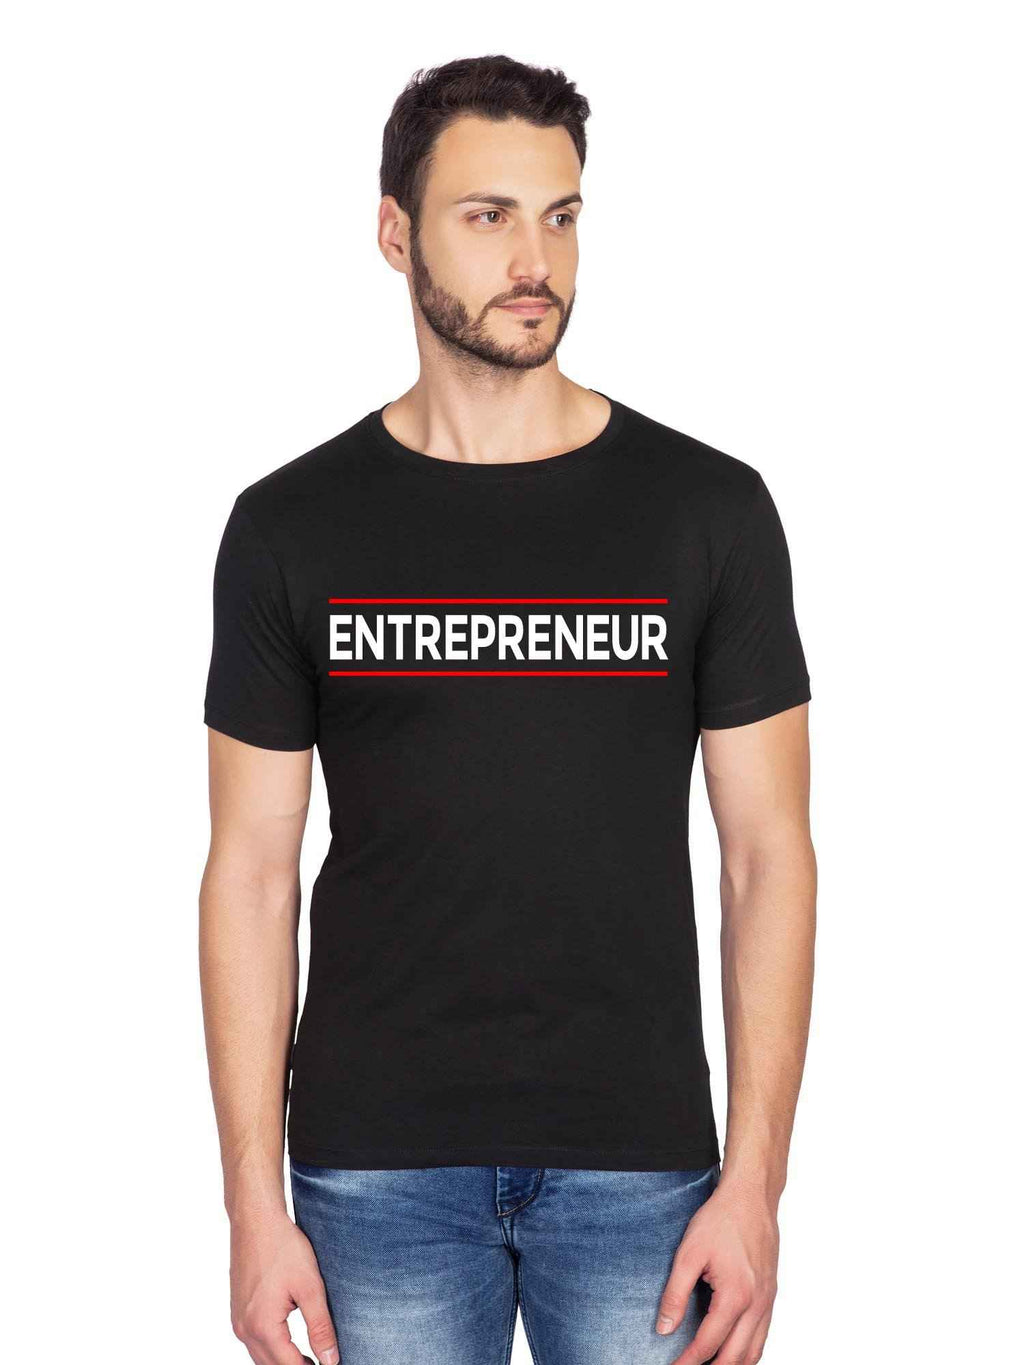 Entrepreneur Graphics Startup Half T shirt - bluehaat